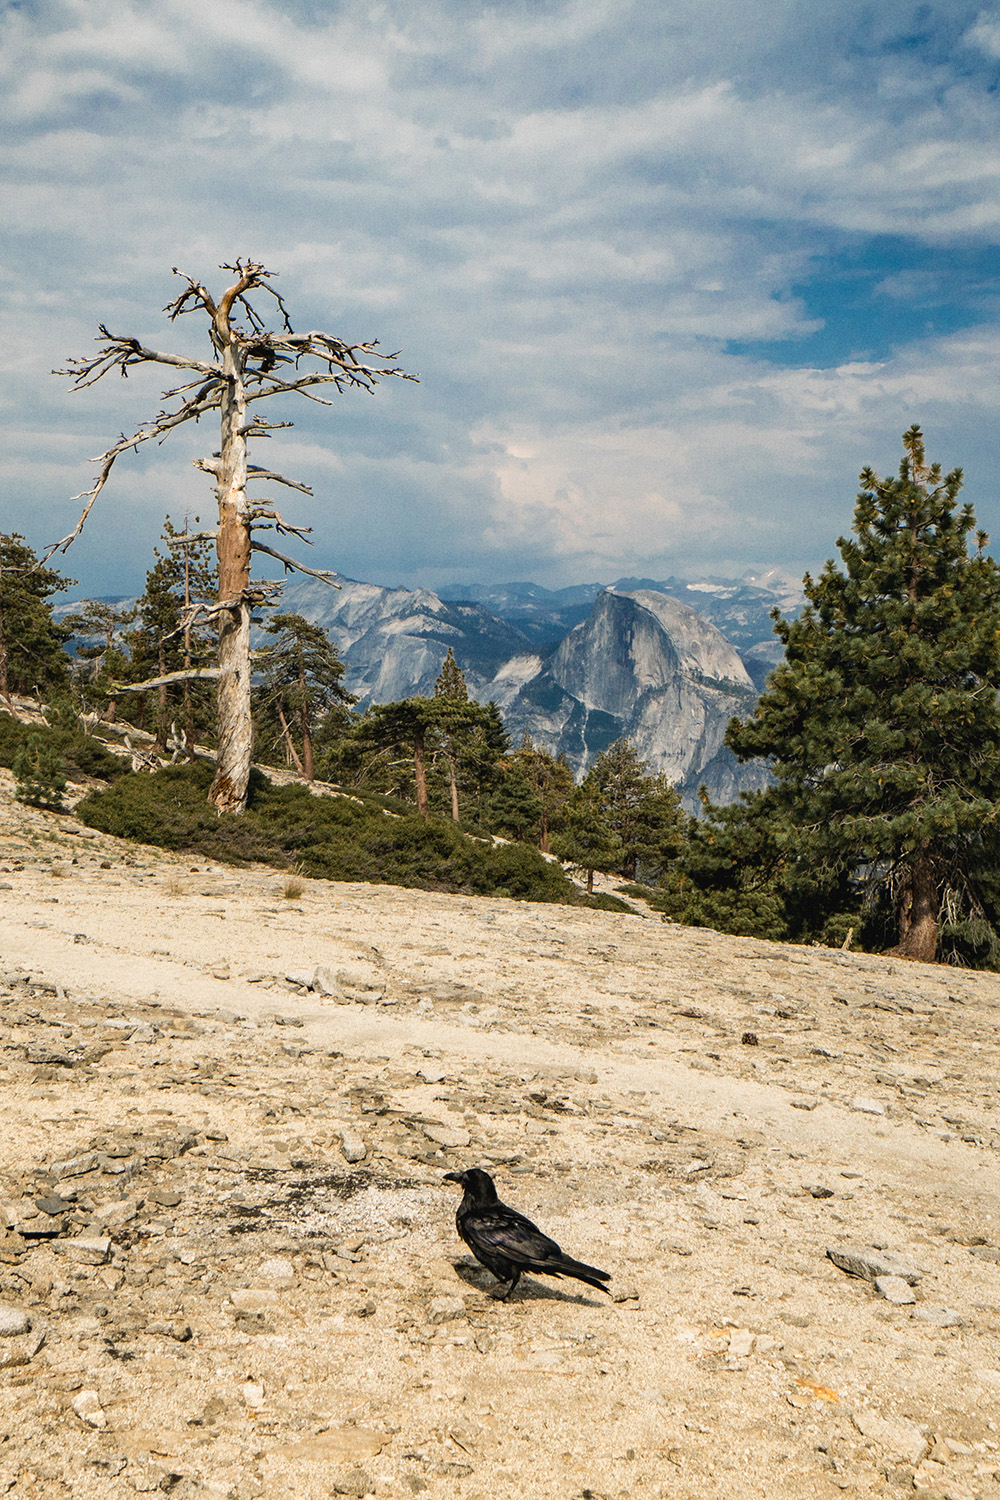 Something tells me this cheeky fella comes here often... for the view of Half Dome, of course!